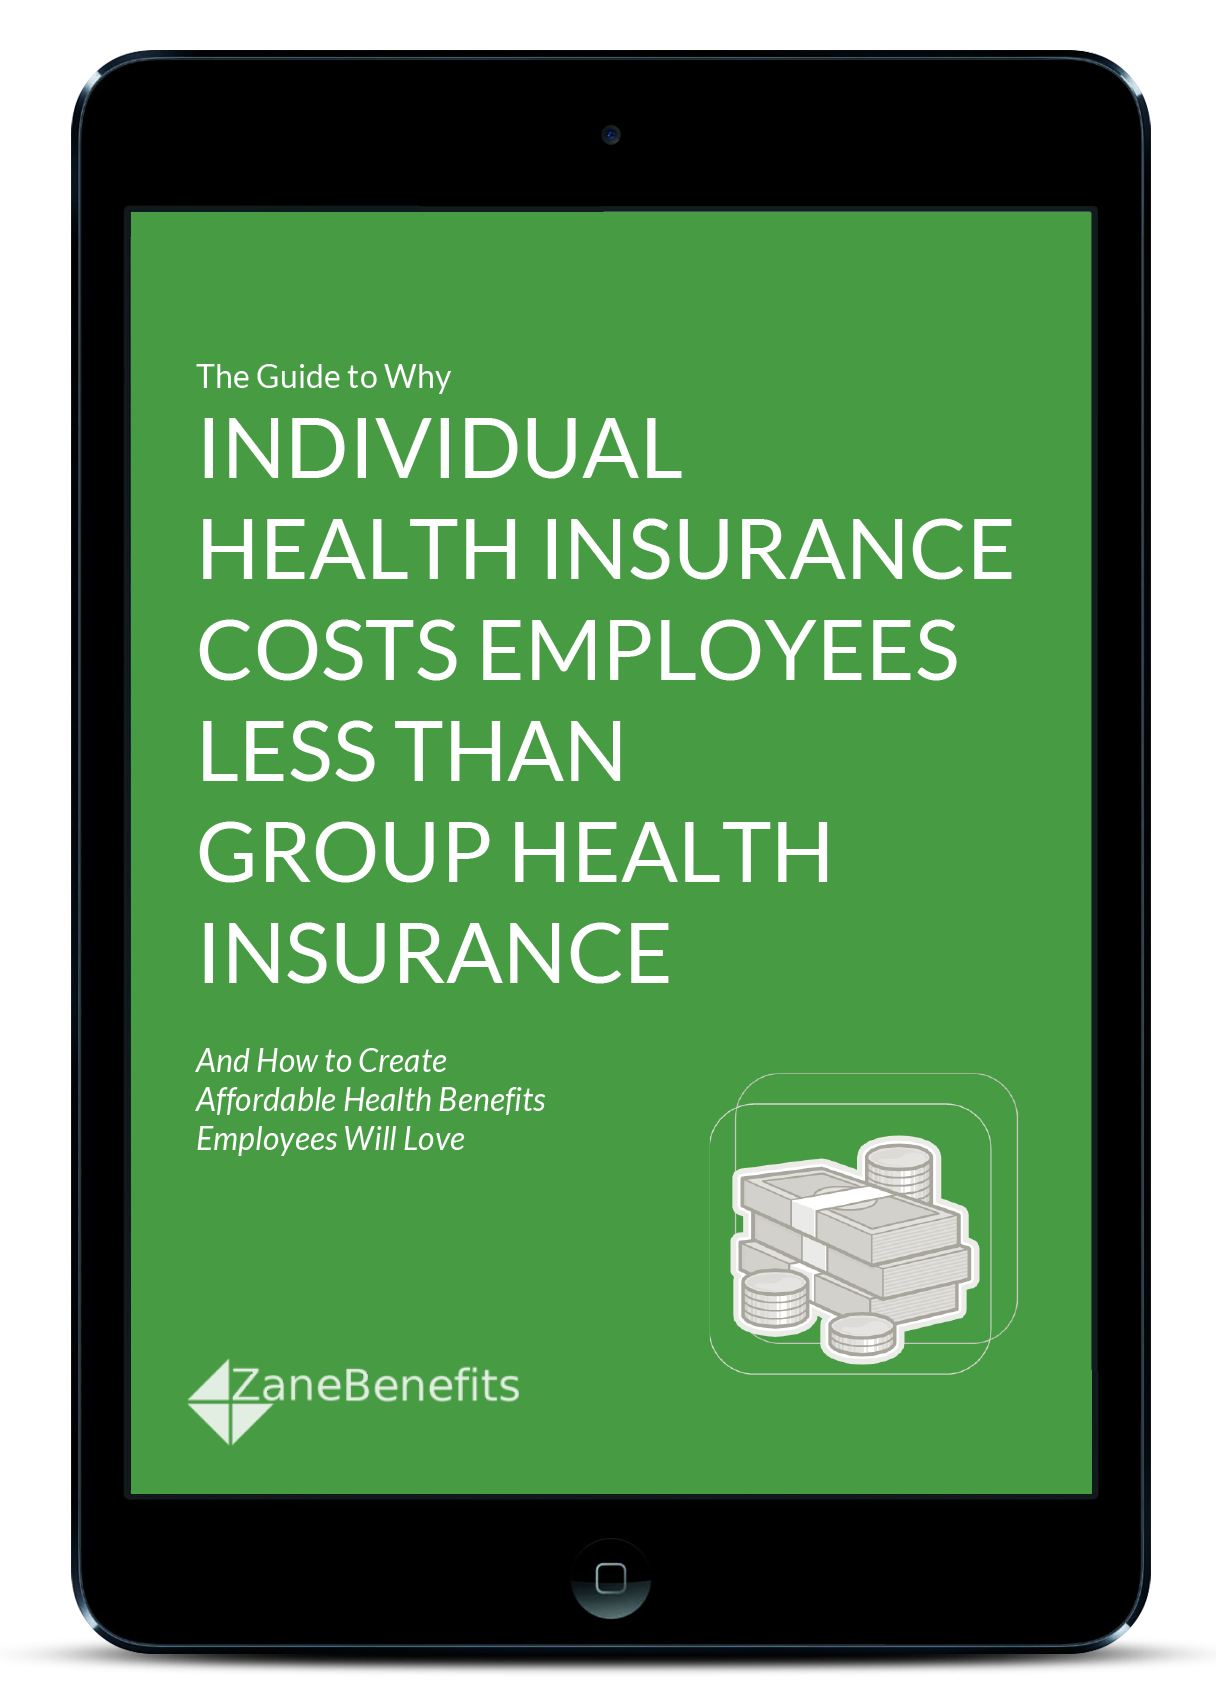 Why Individual Health Insurance Costs Employees Less Than Group Health Insurance